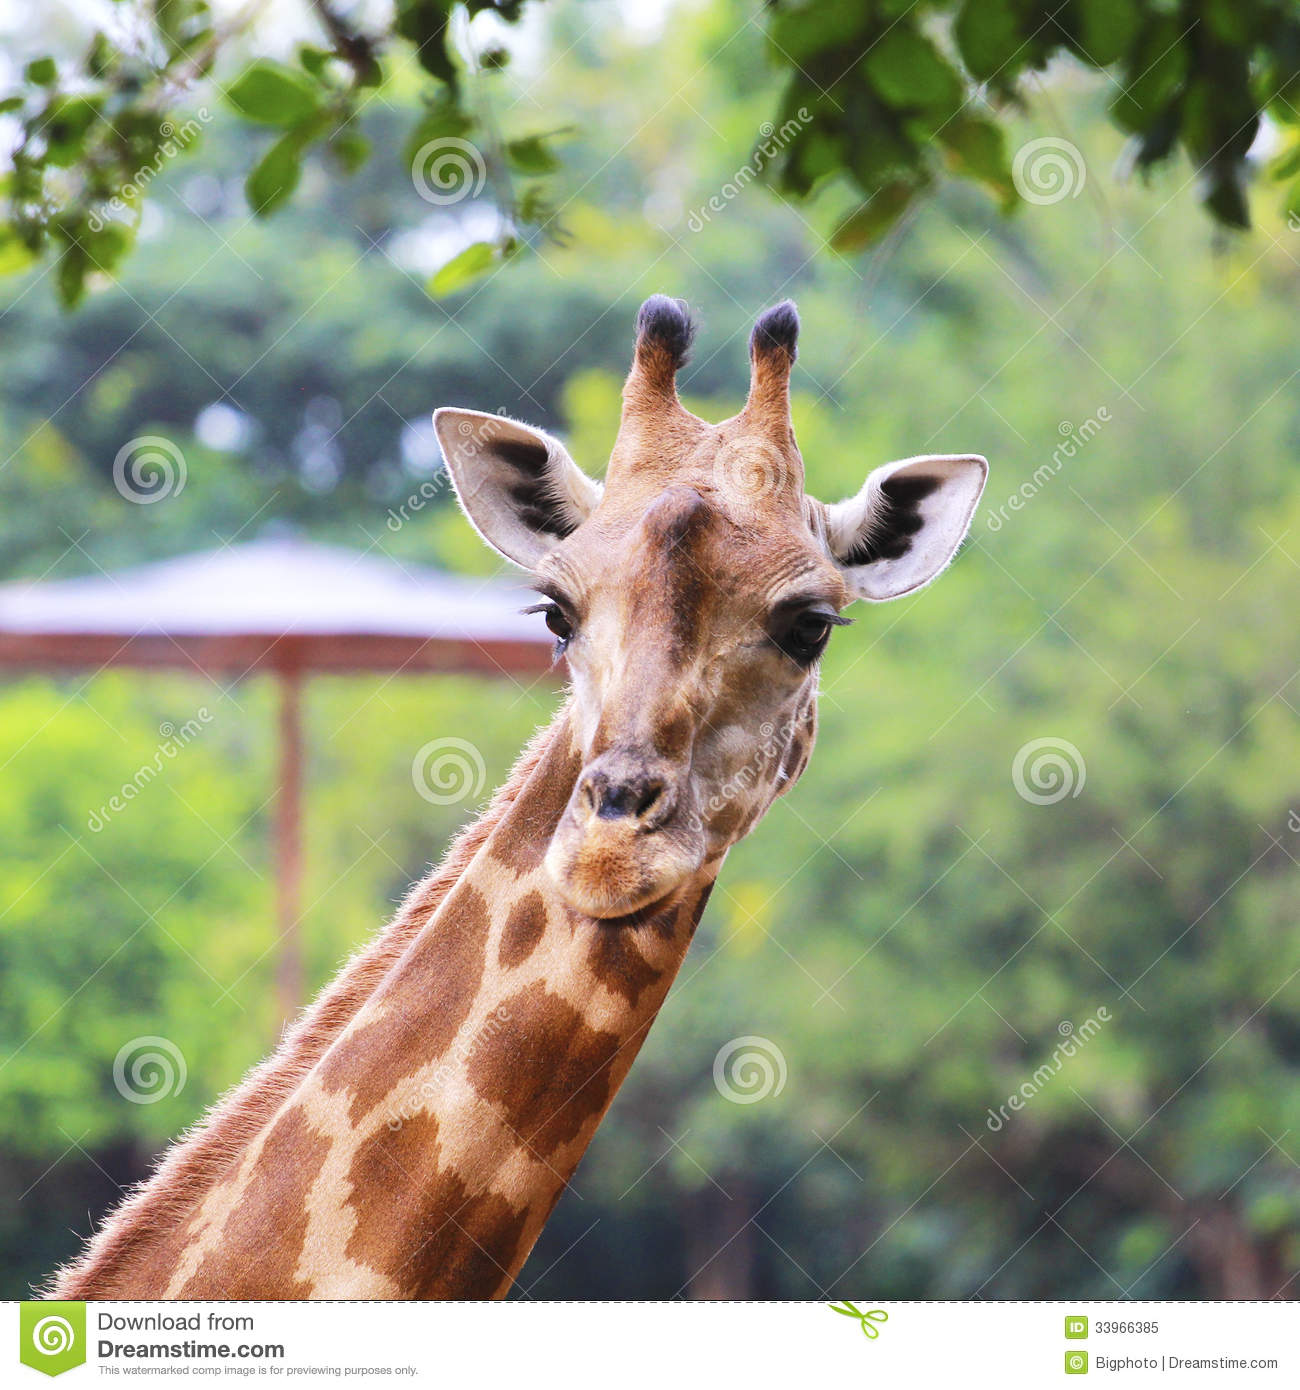 Giraffe head close up - photo#27